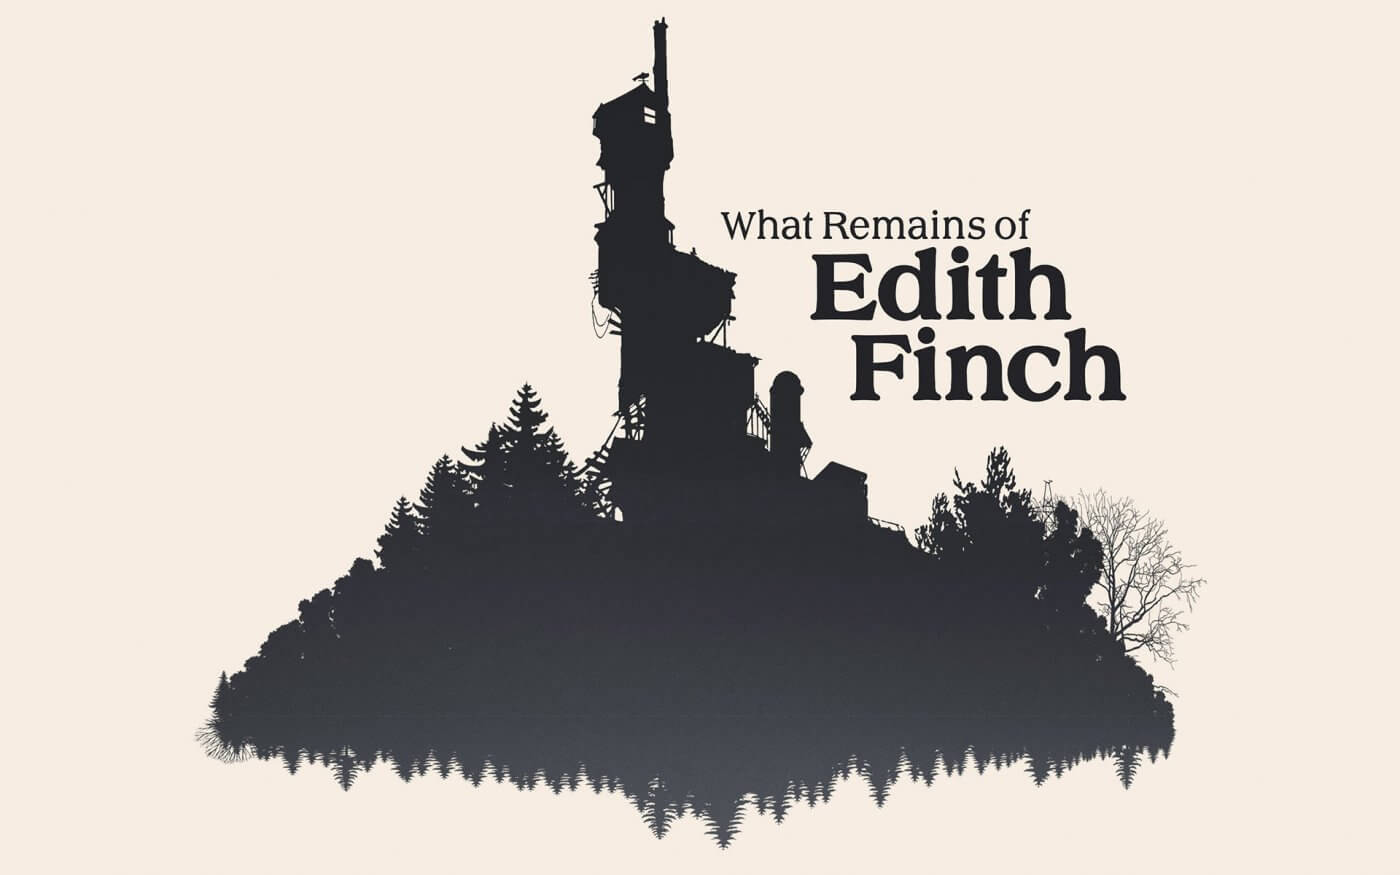 what remains of edith finch 1 - What Remains of Edith Finch (Video Game)